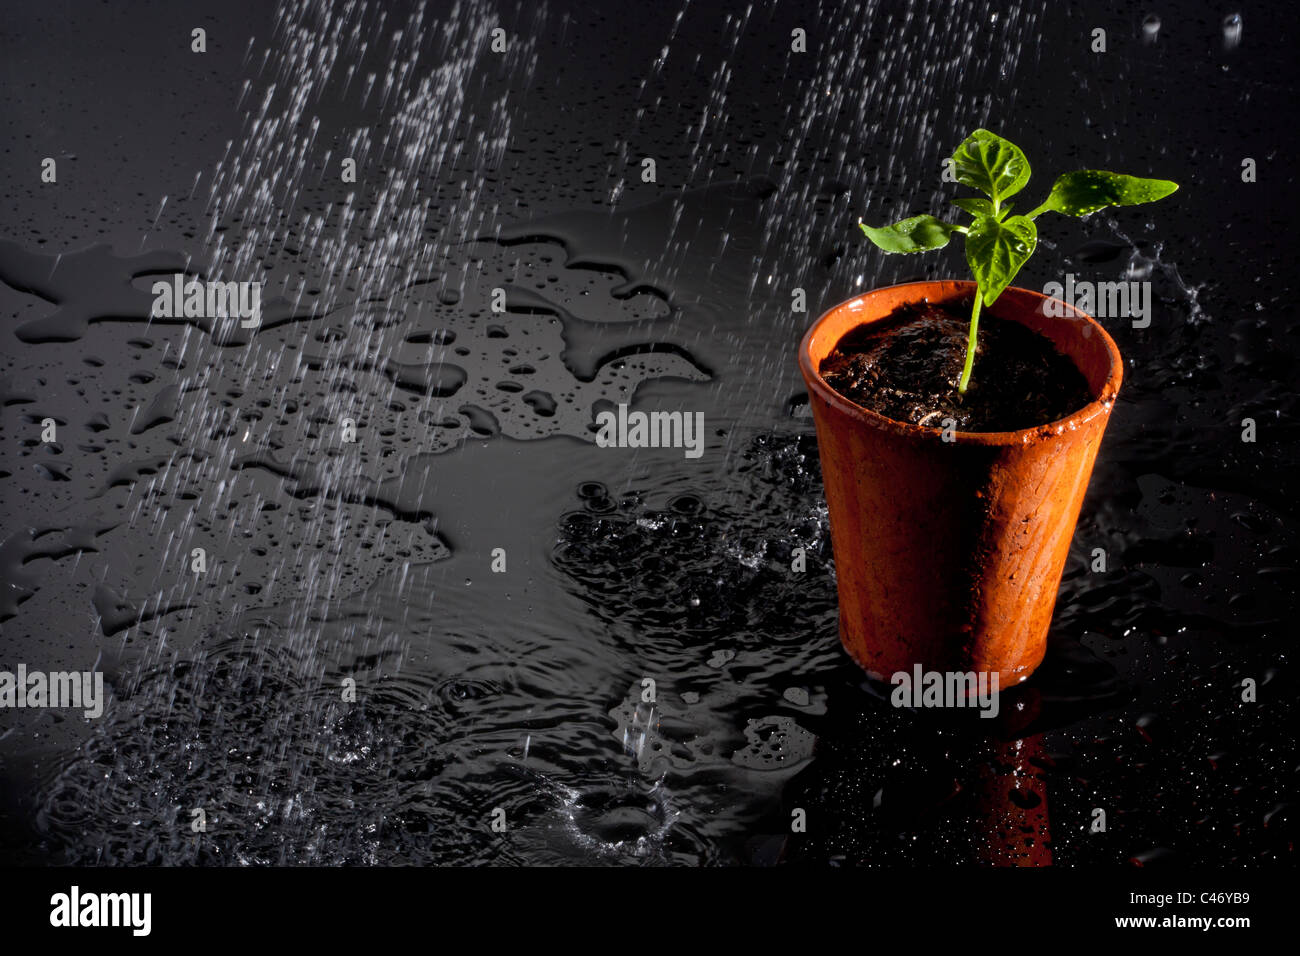 seedling in a terracotta pot being watered - Stock Image